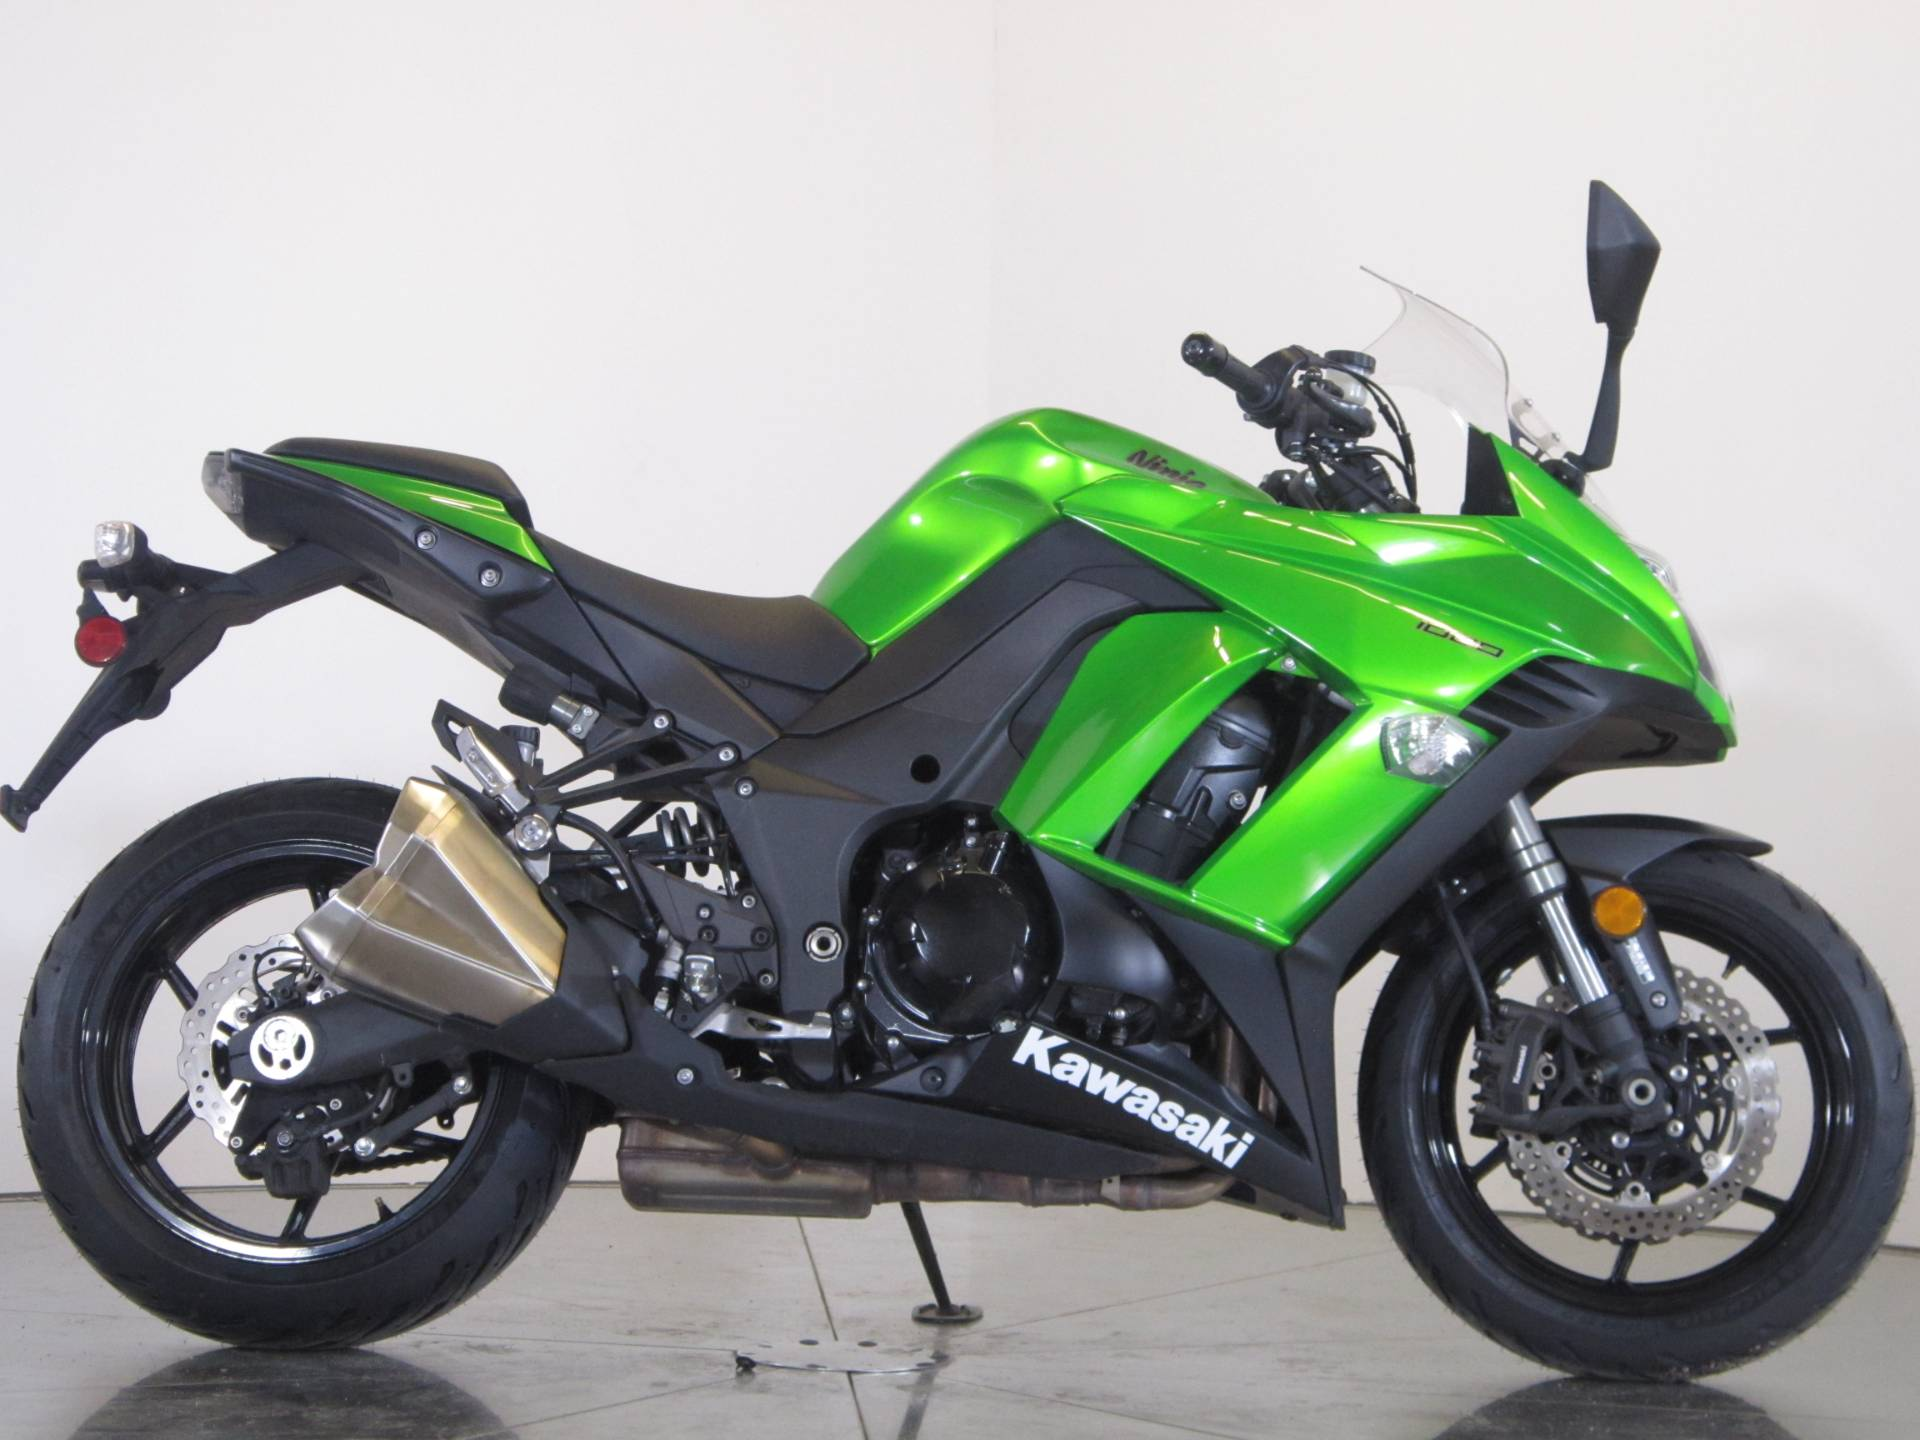 Used 2014 Kawasaki Ninja® 1000 ABS Motorcycles in Greenwood Village ...